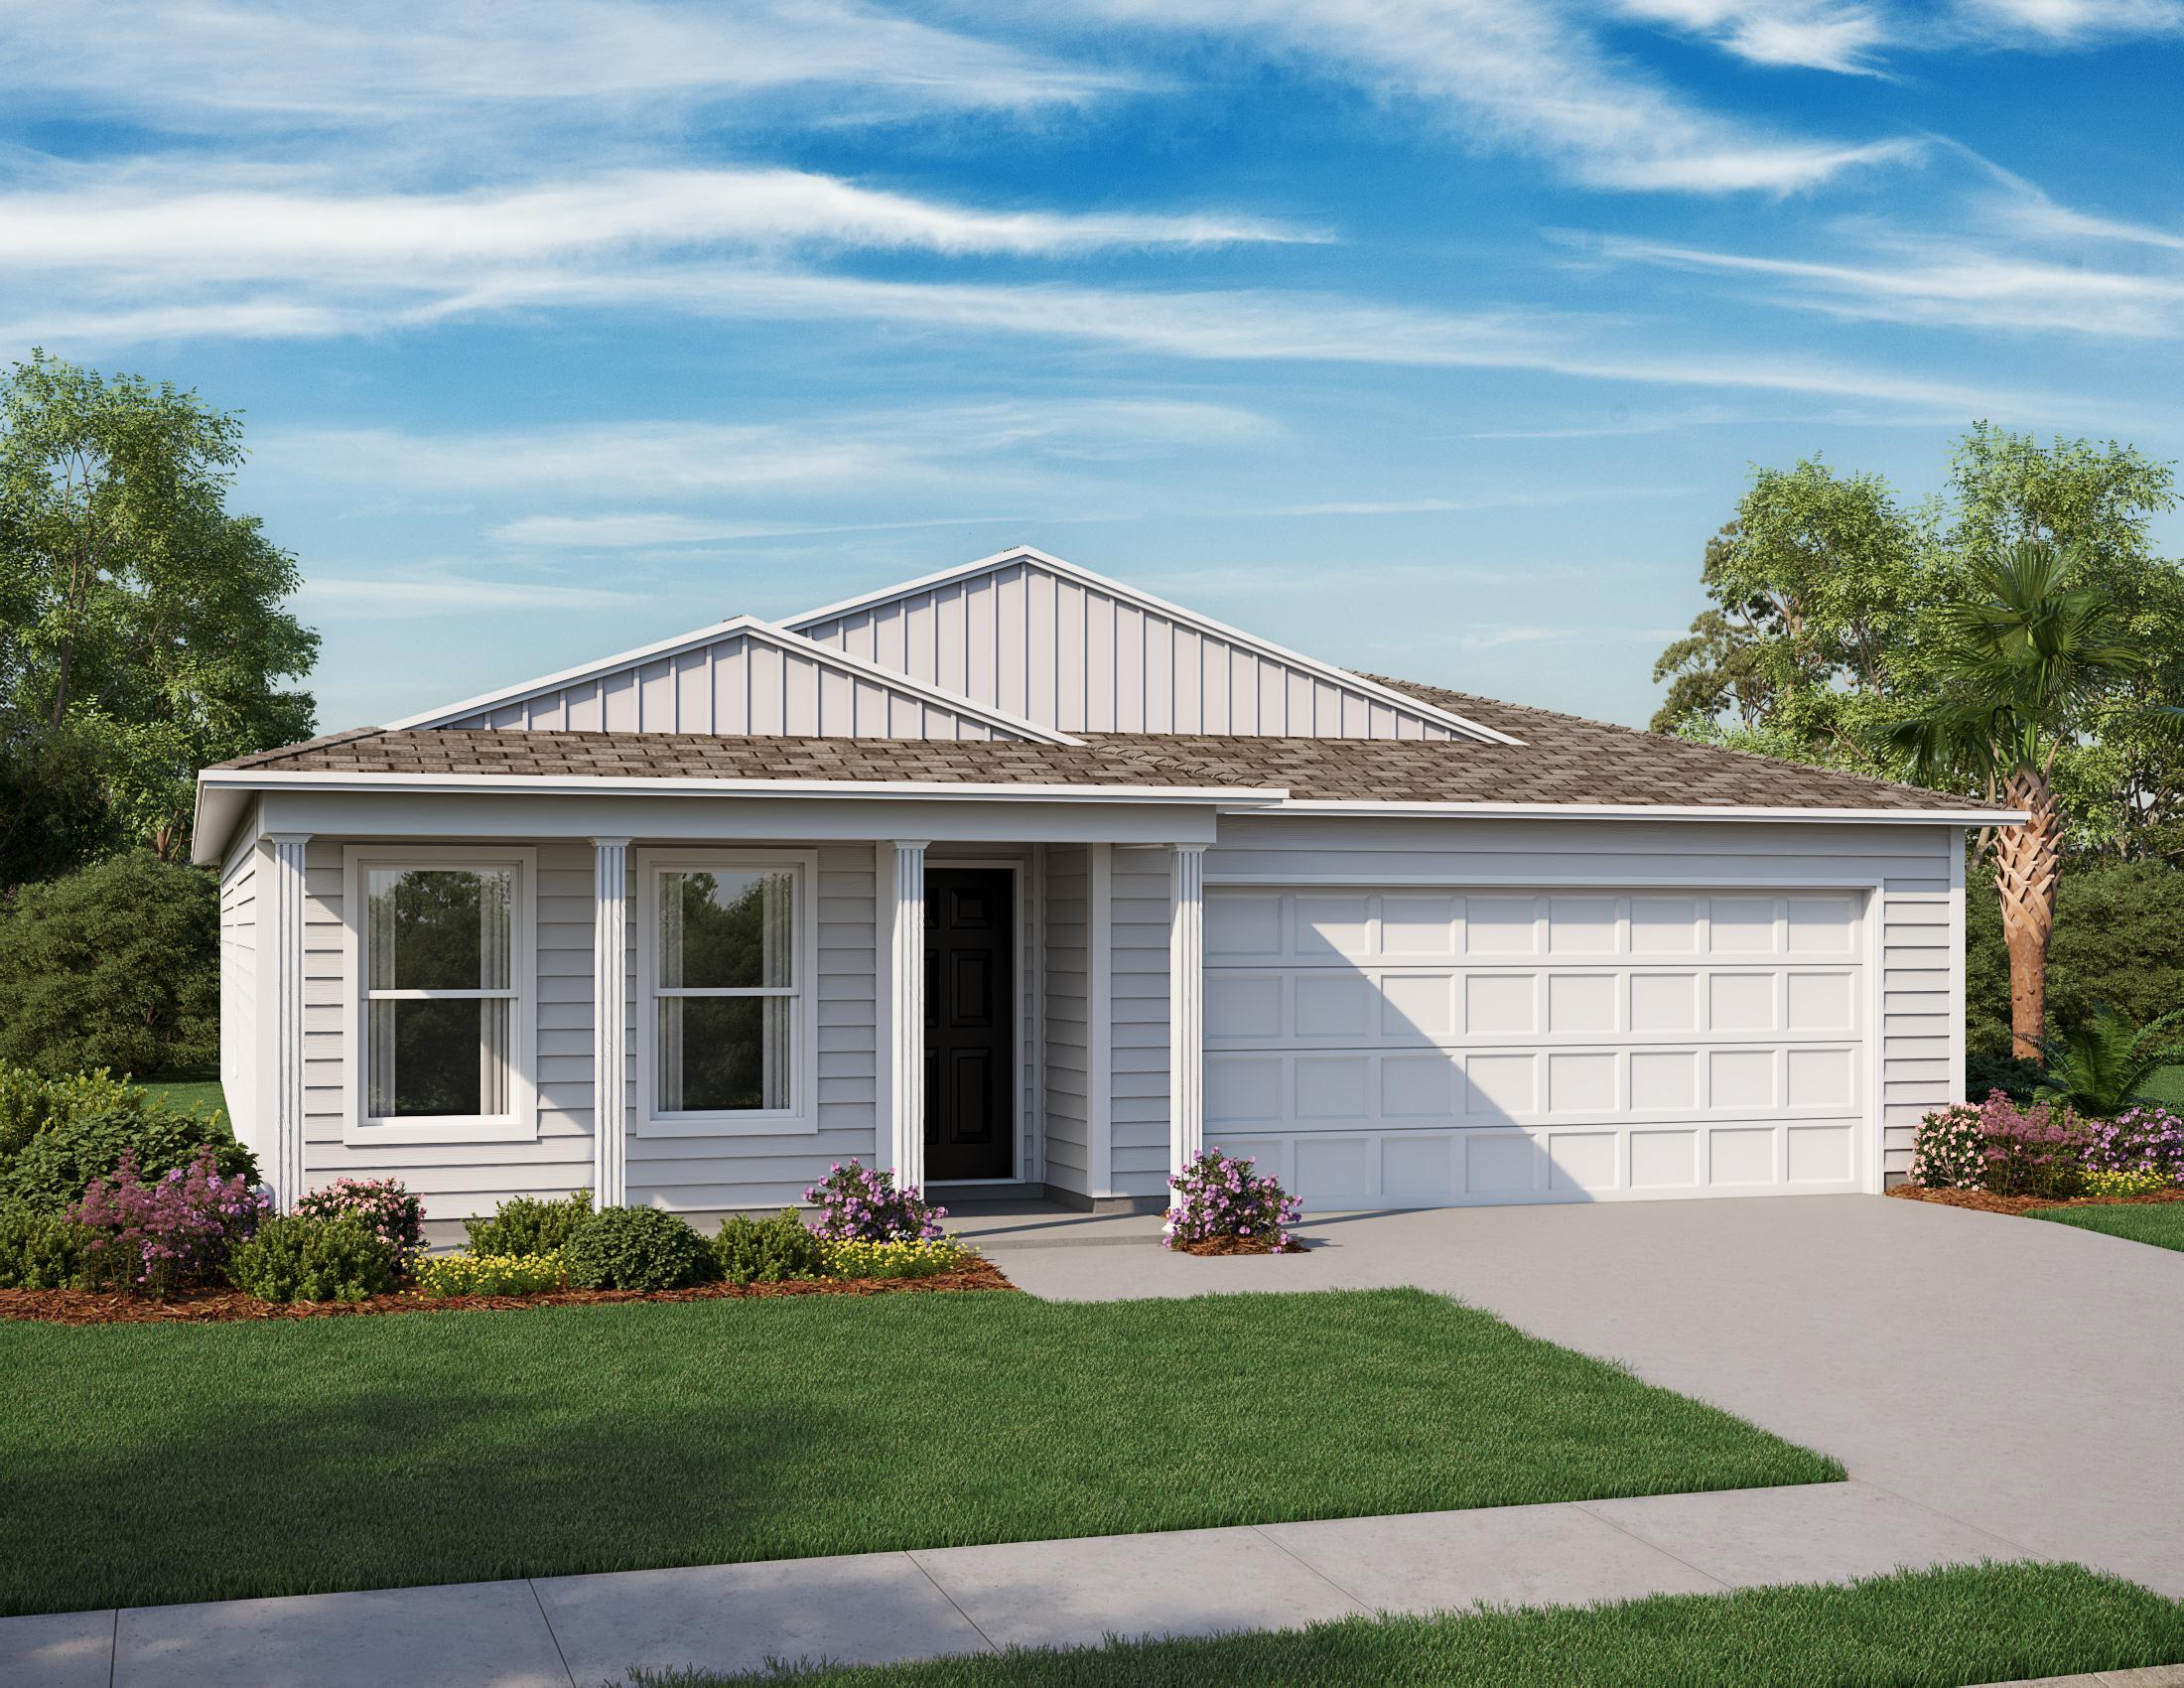 New Construction Homes & Plans in Lehigh Acres, FL | 2,141 Homes